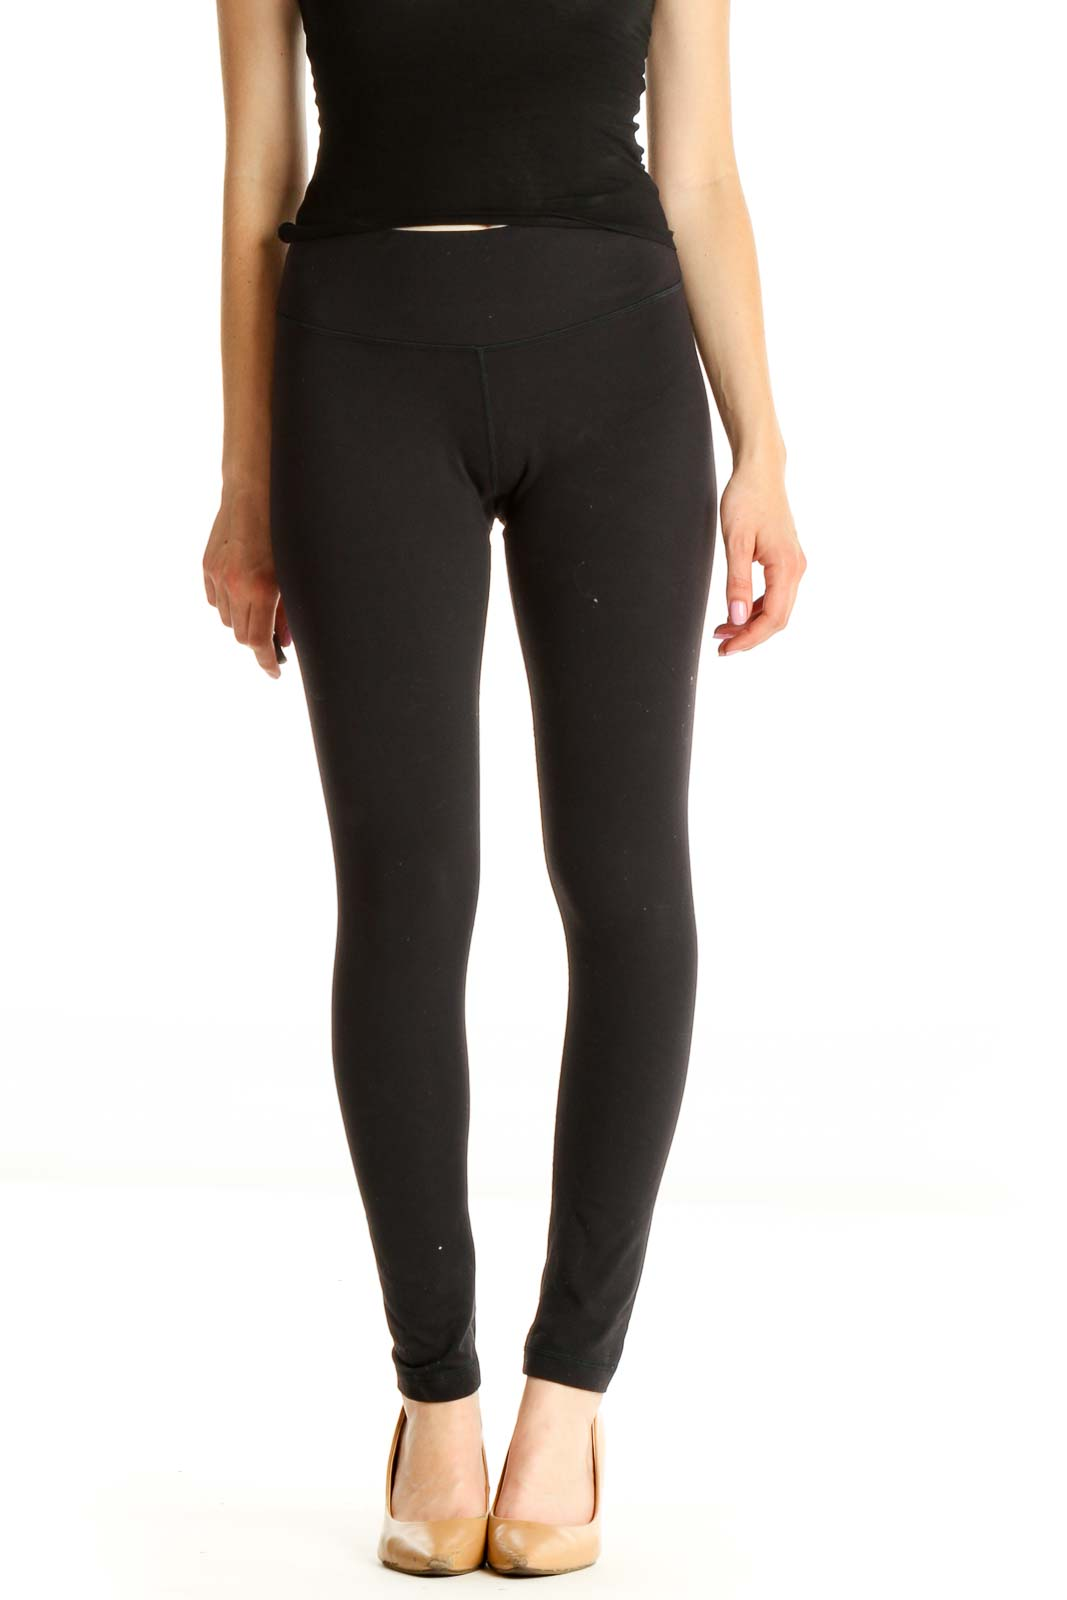 Black Solid Casual Leggings Front